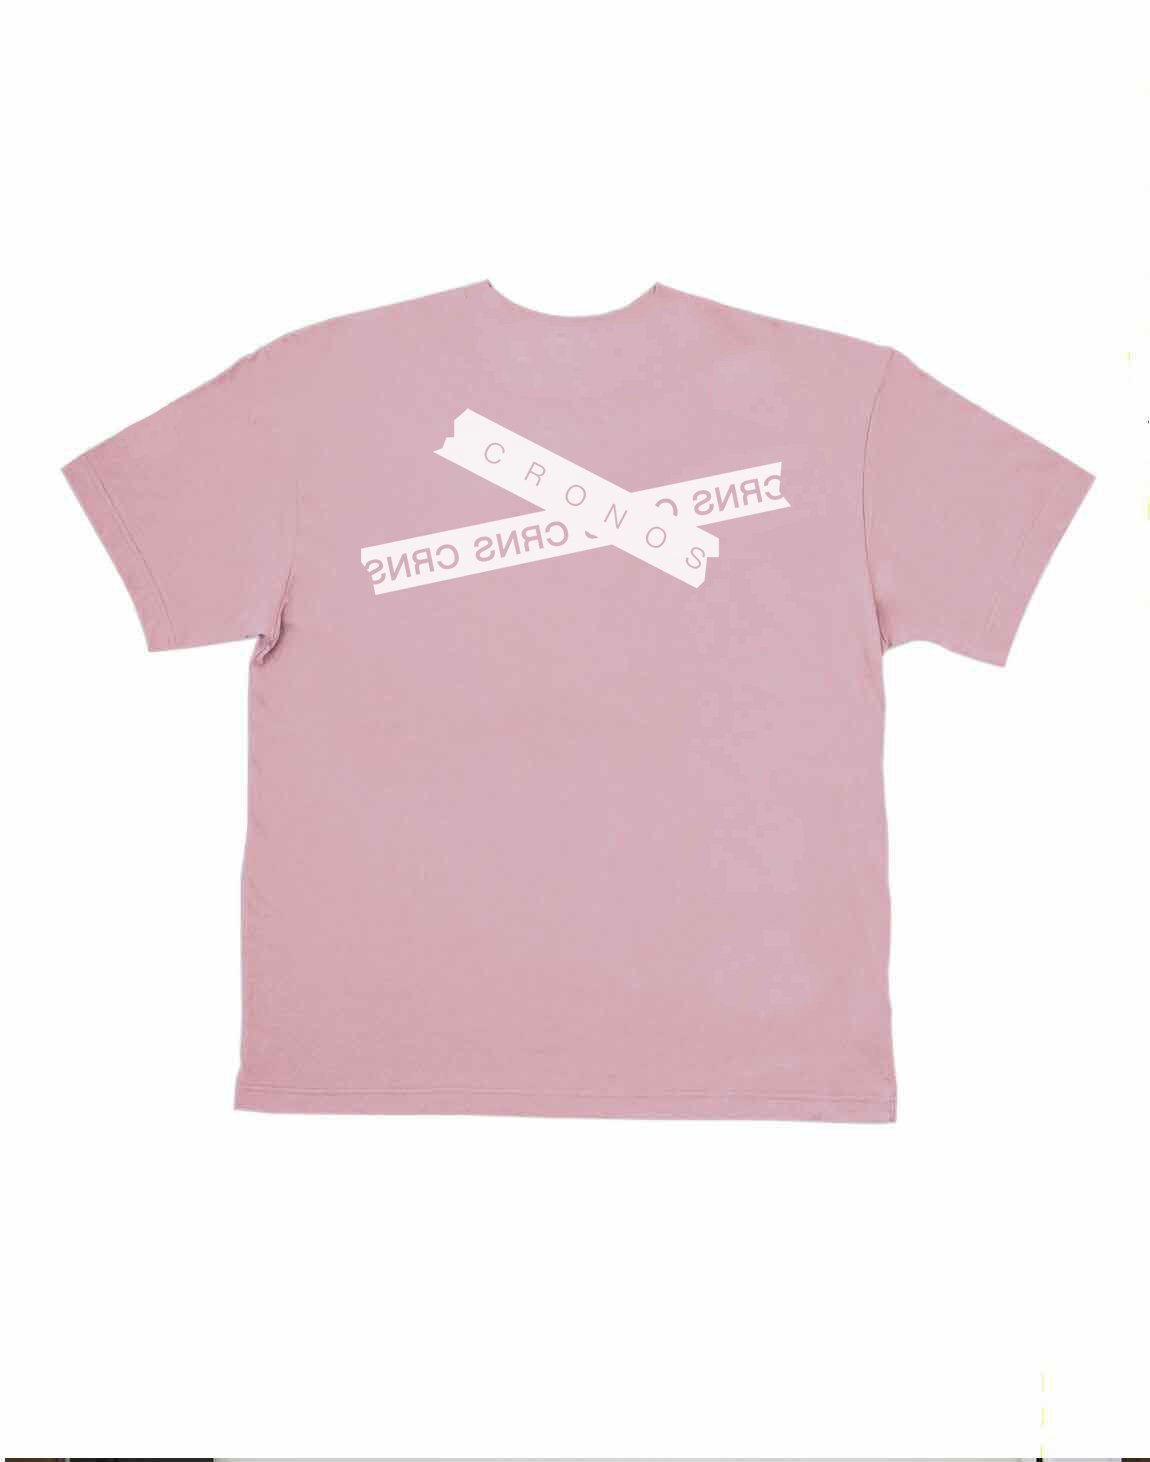 <img class='new_mark_img1' src='https://img.shop-pro.jp/img/new/icons1.gif' style='border:none;display:inline;margin:0px;padding:0px;width:auto;' />CRONOS TAPE LOGO OVER SIZE T-SHIRTS【PINK】